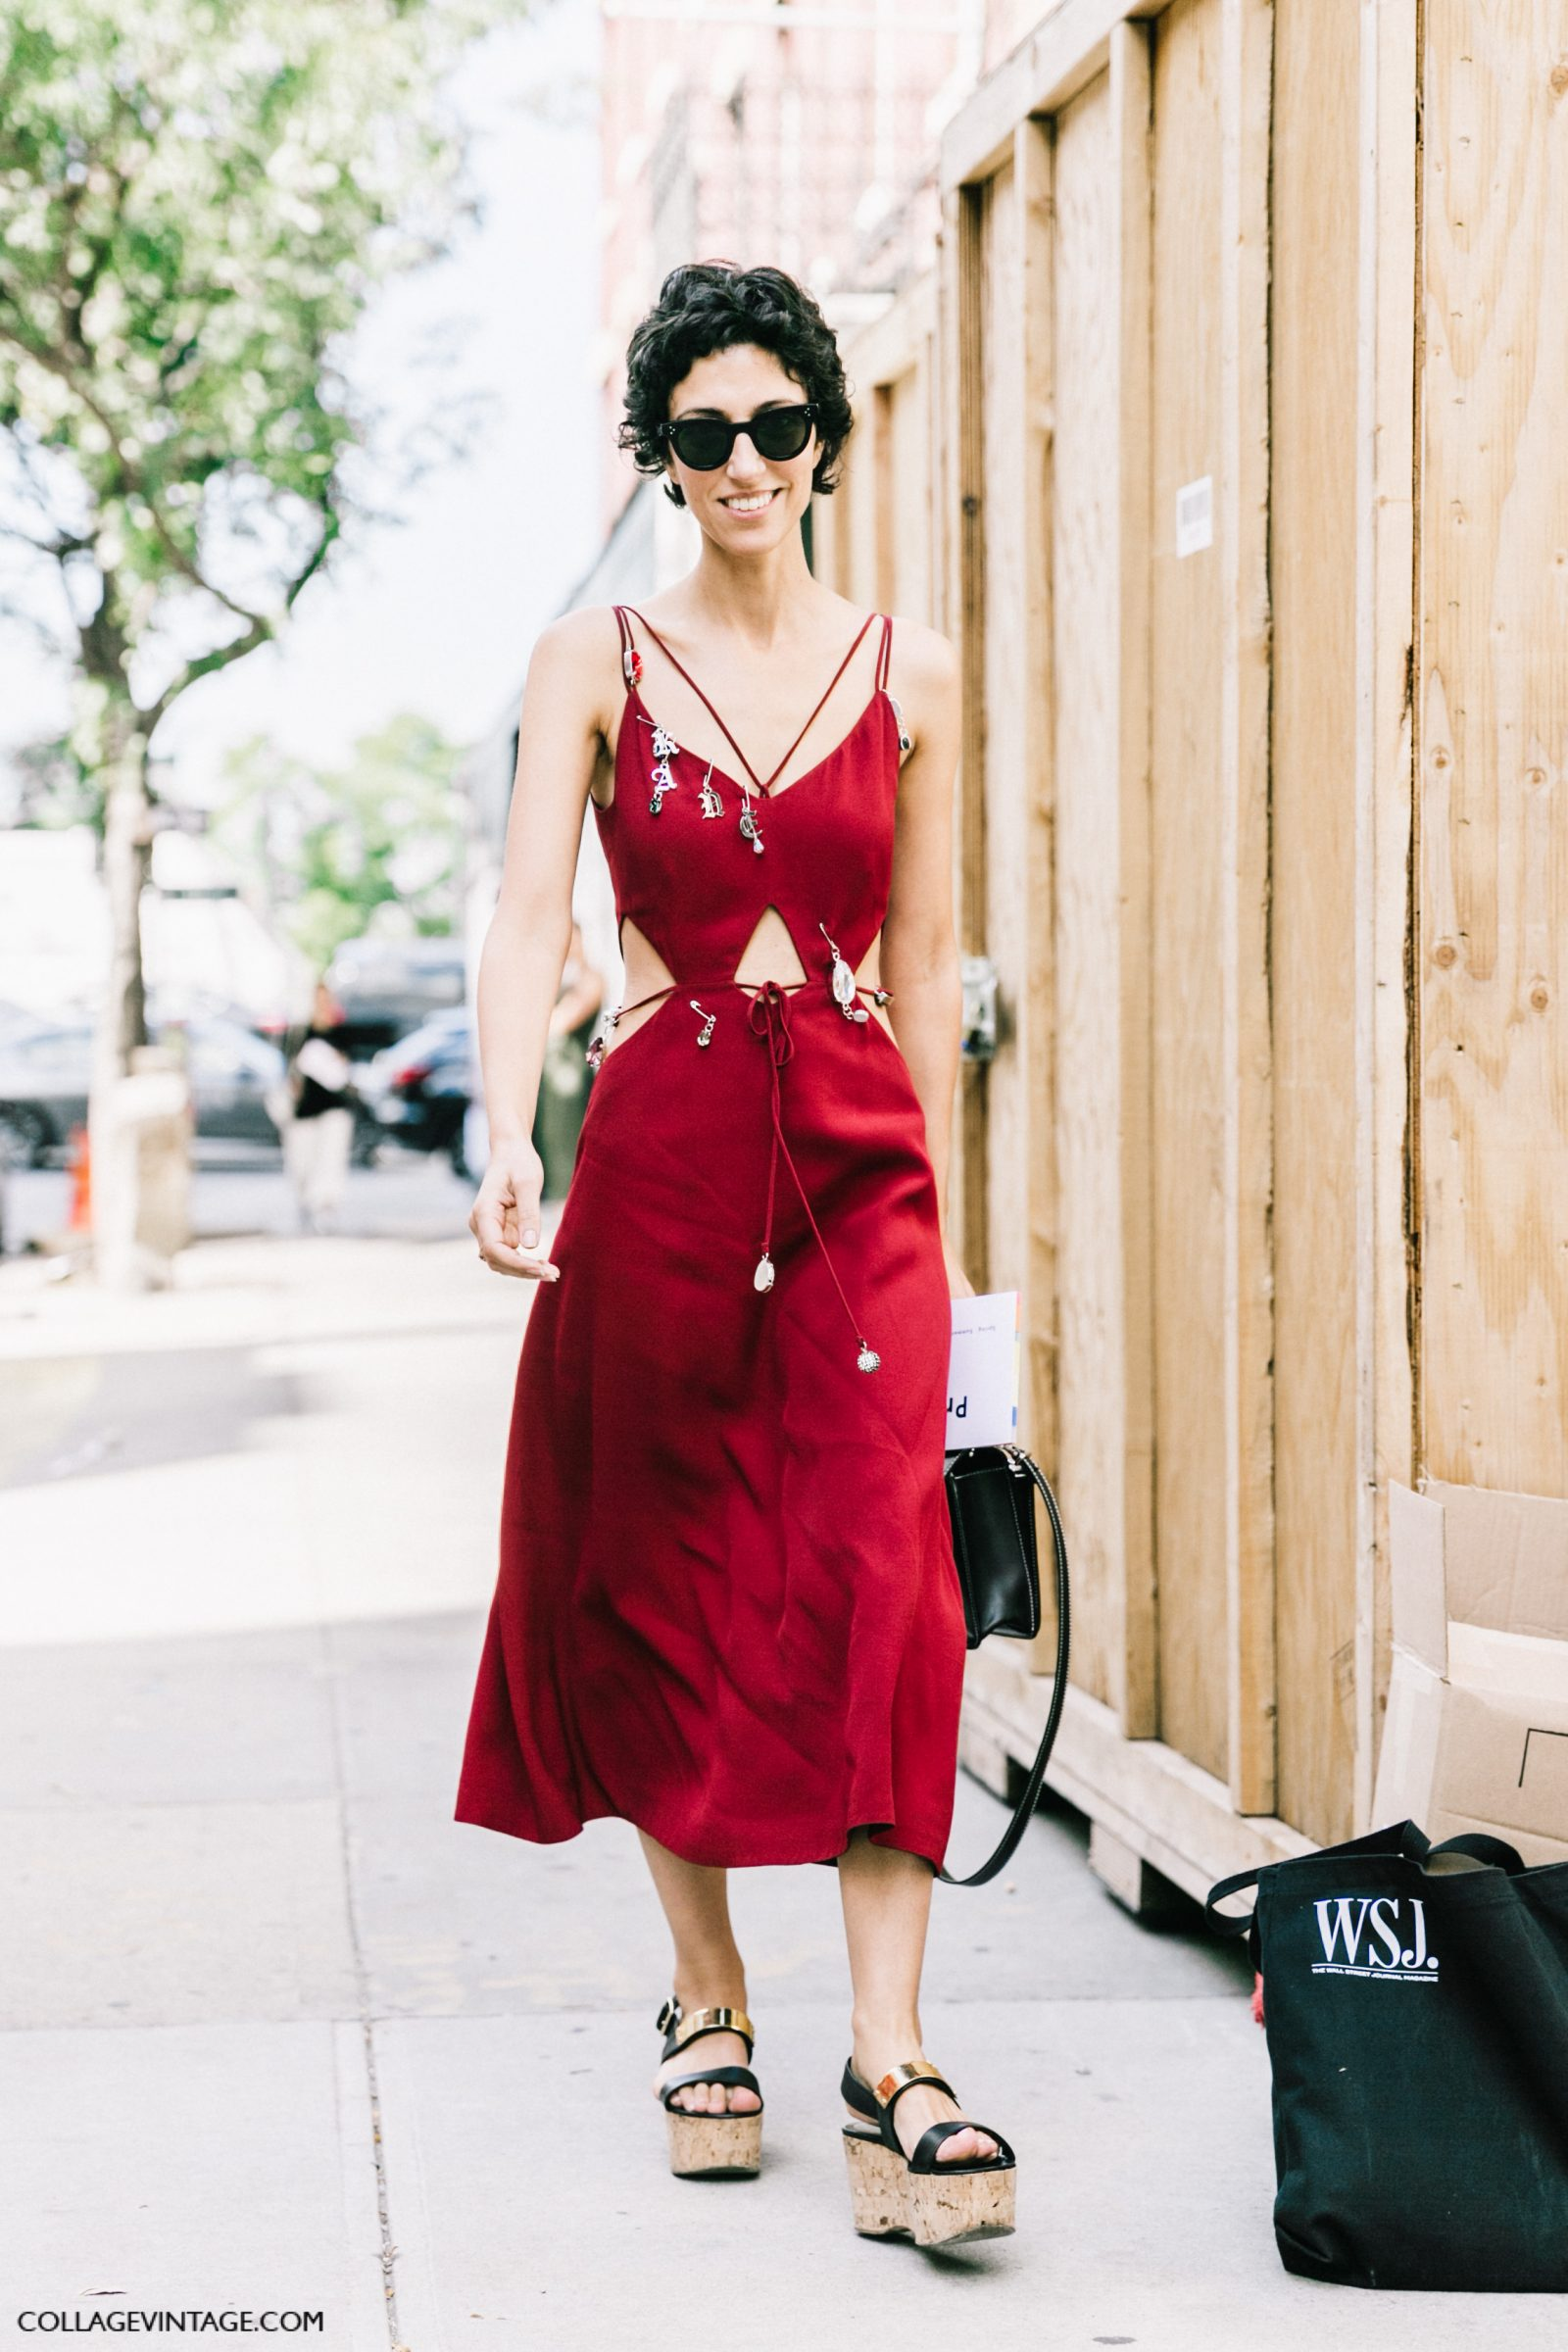 nyfw-new_york_fashion_week_ss17-street_style-outfits-collage_vintage-vintage-phillip_lim-the-row-proenza_schouler-rossie_aussolin-211